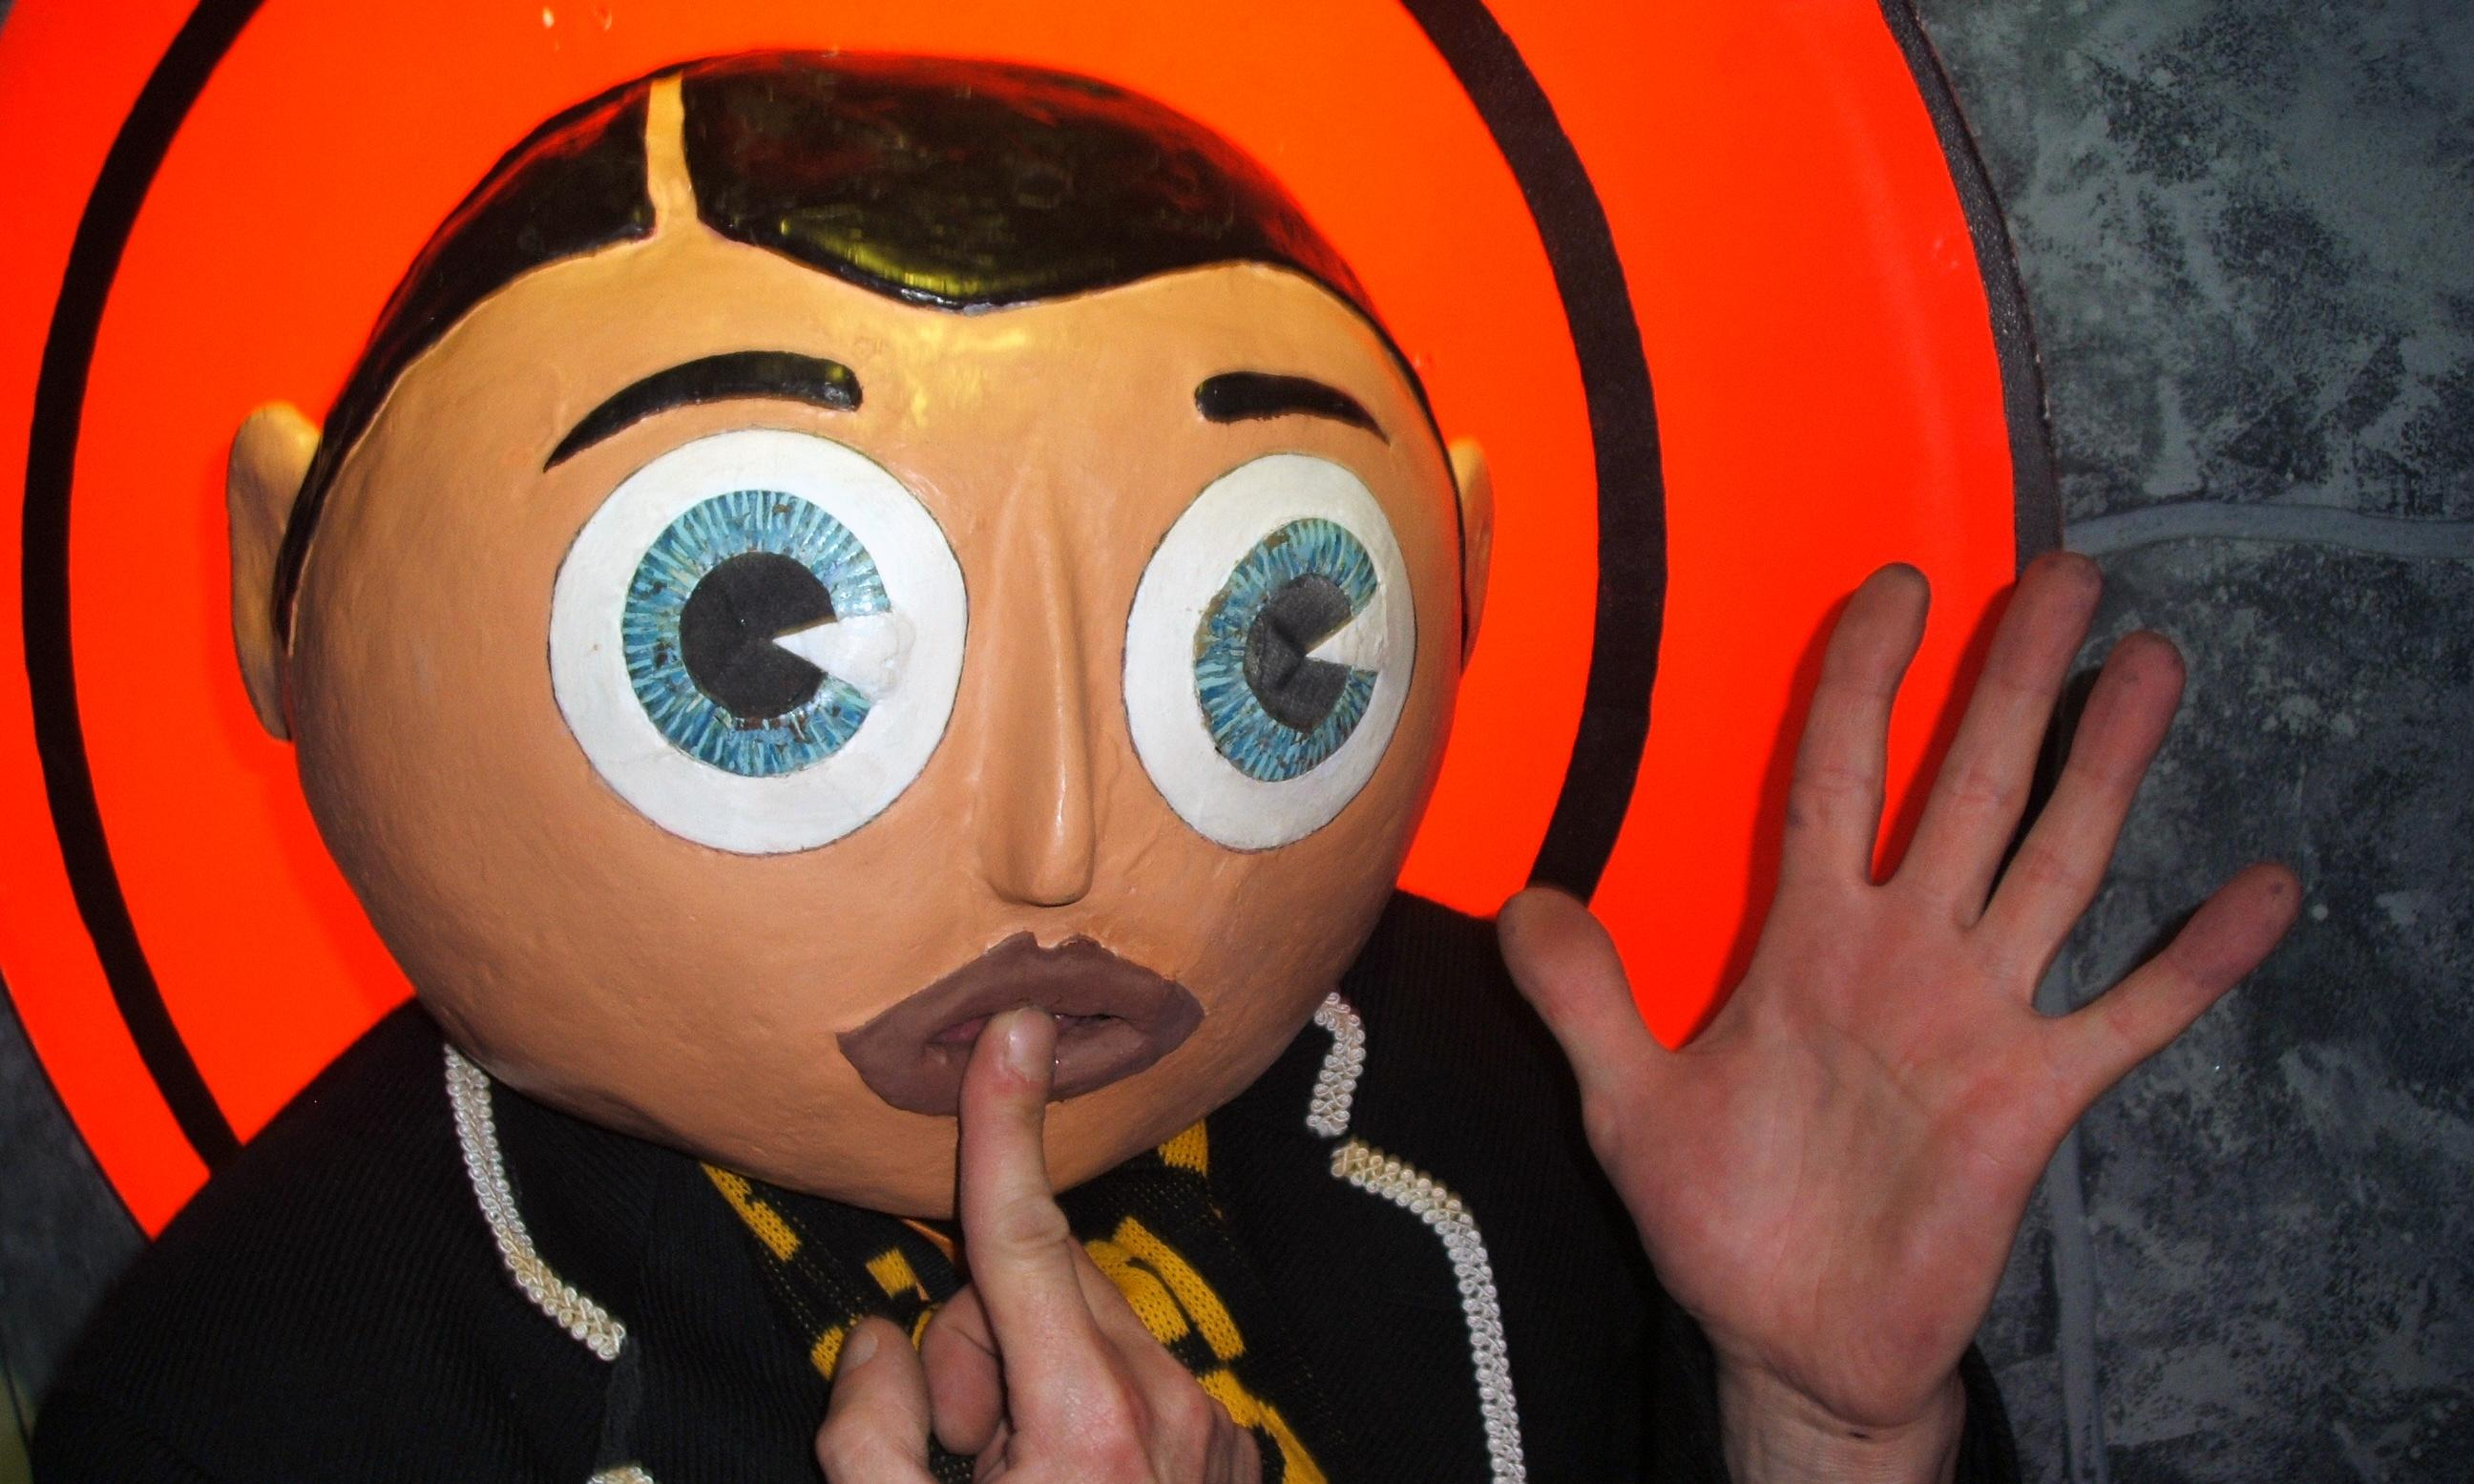 TV tonight: the moving story behind the genius in the papier-mache head